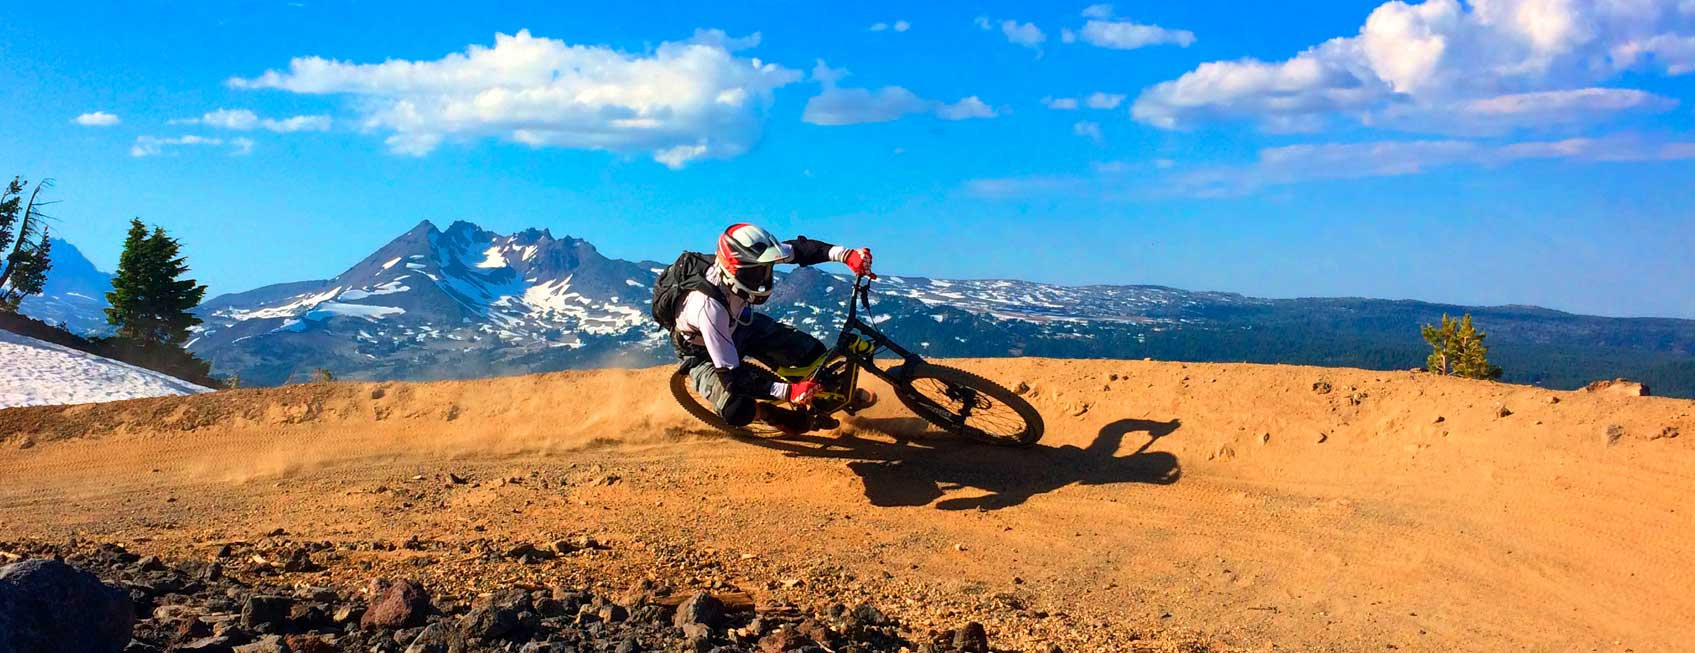 Bend Trails :: Bend Oregon Mountain Biking Trails and Maps